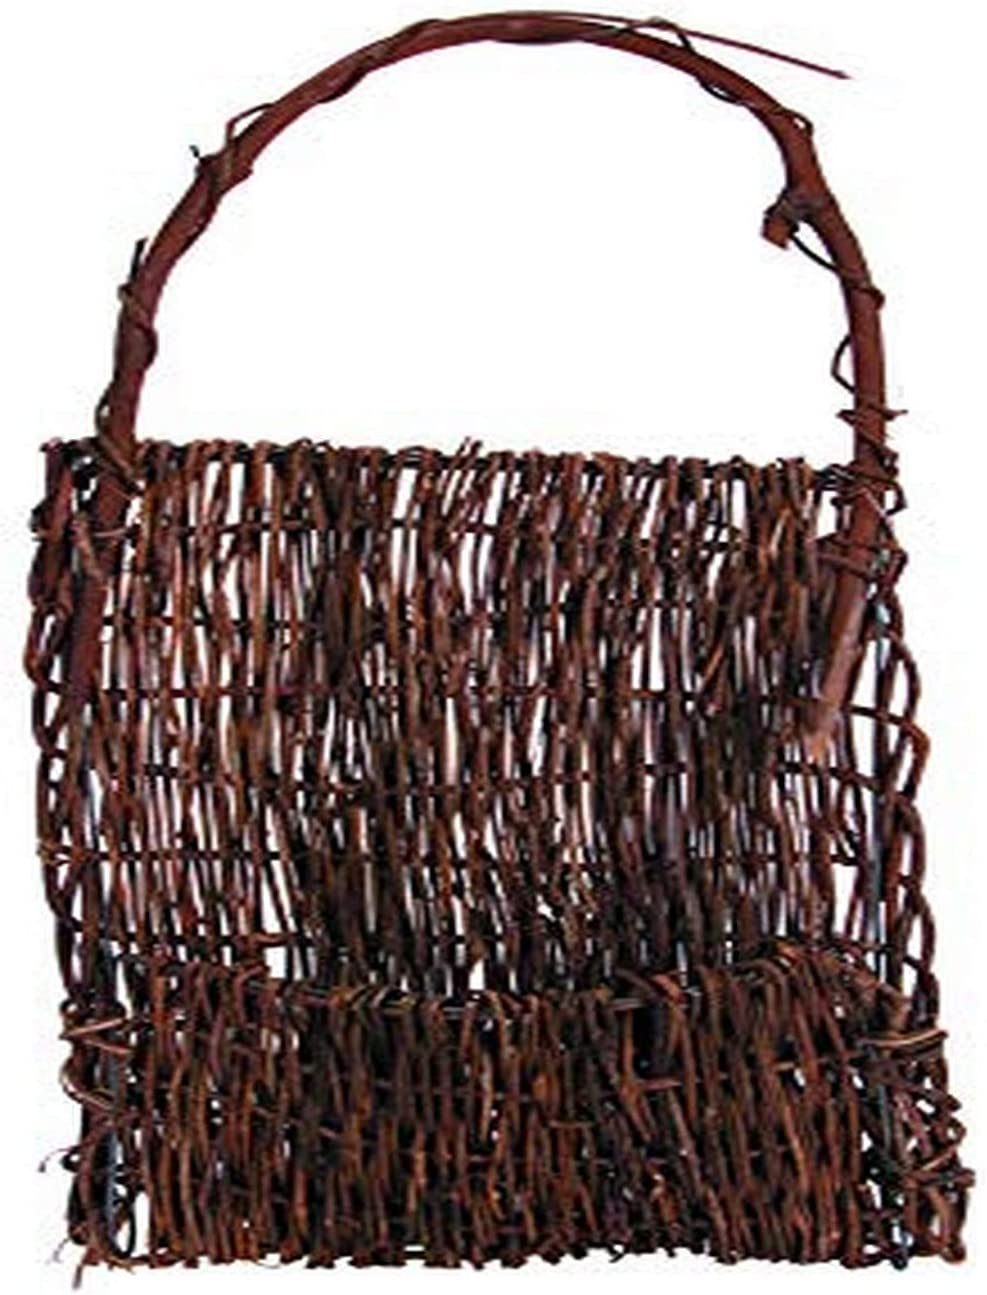 CWI Gifts Vine Pocket Basket, 20-Inch Party Supplies, Brown